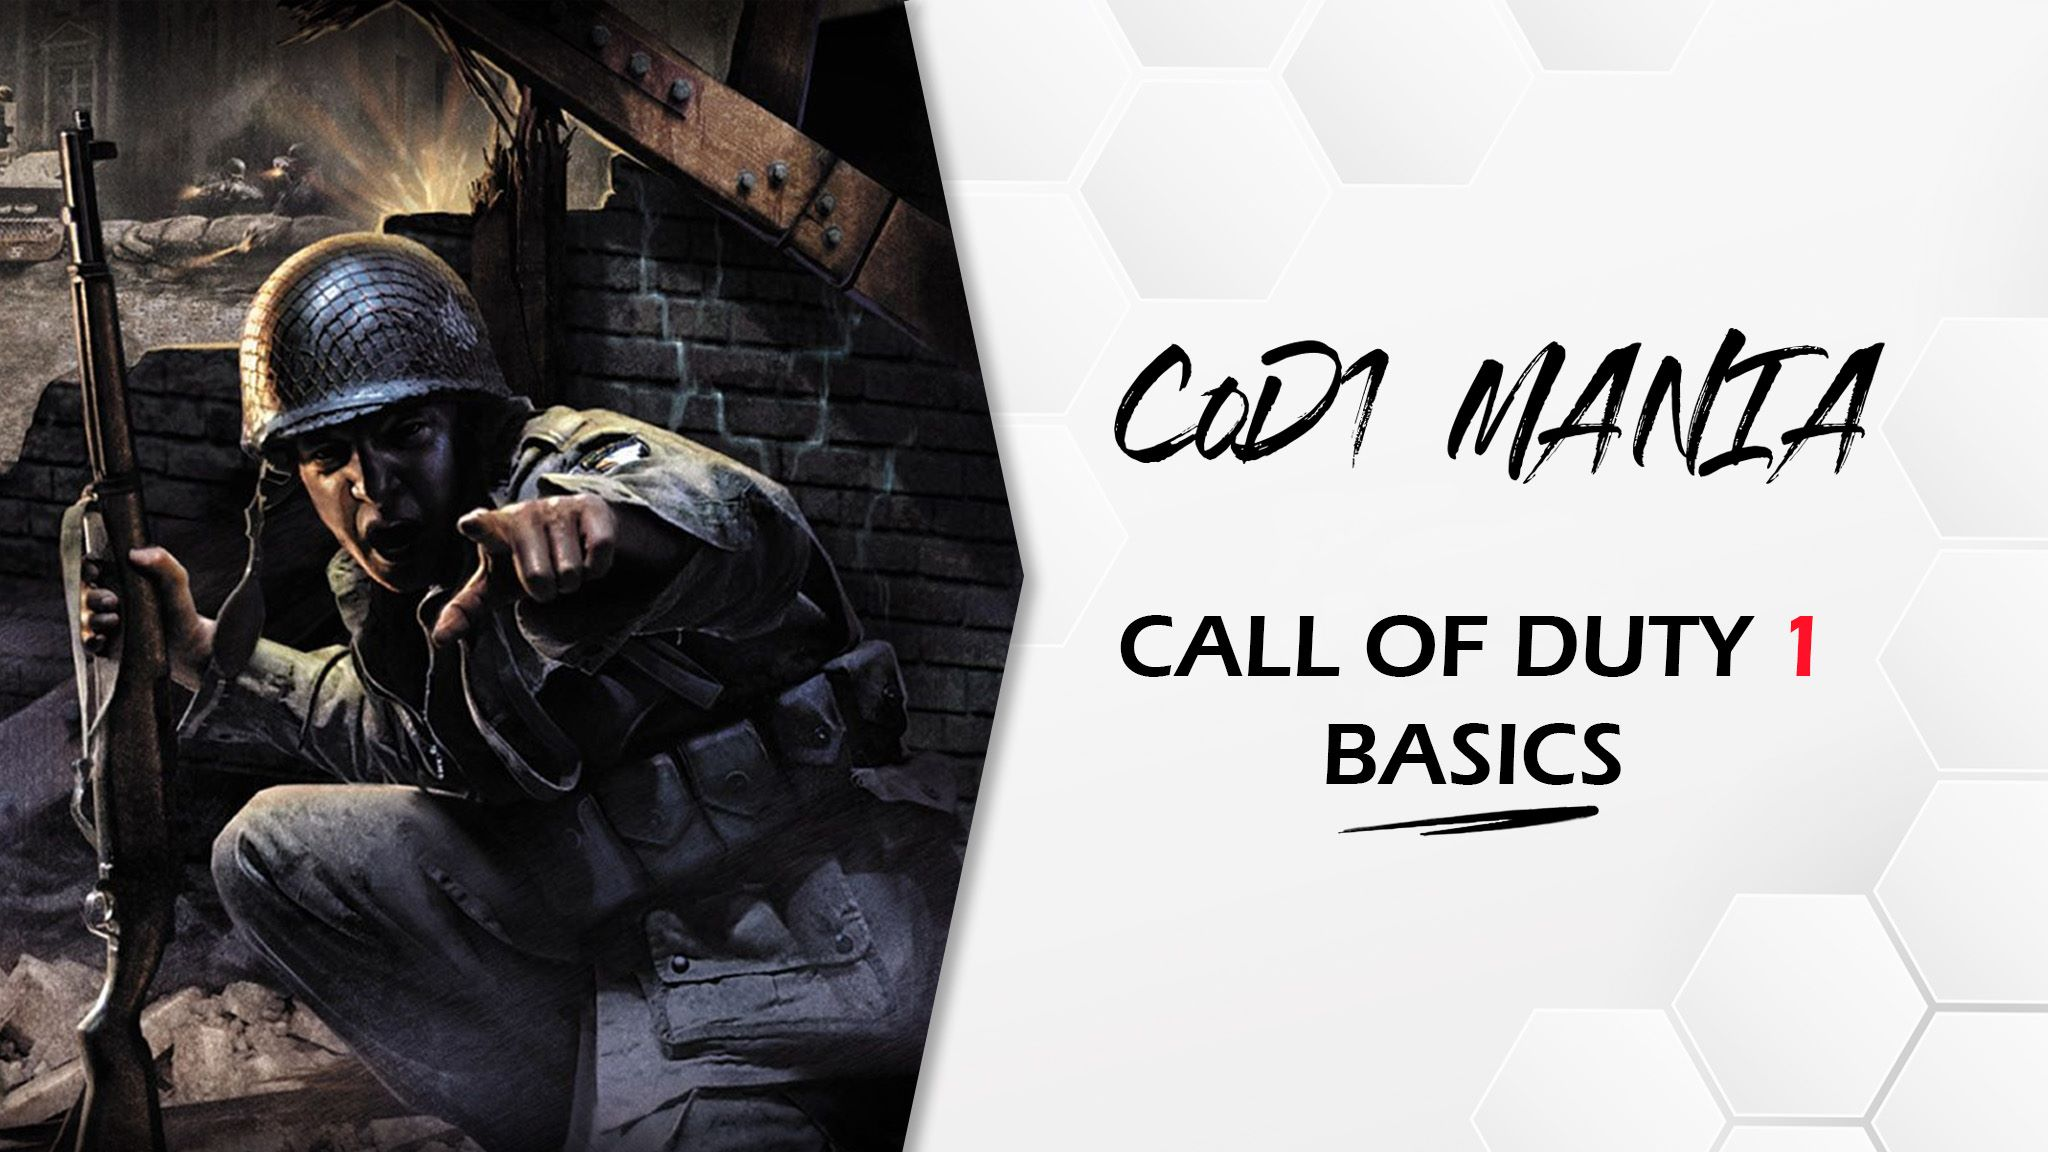 Call of Duty 1 basics